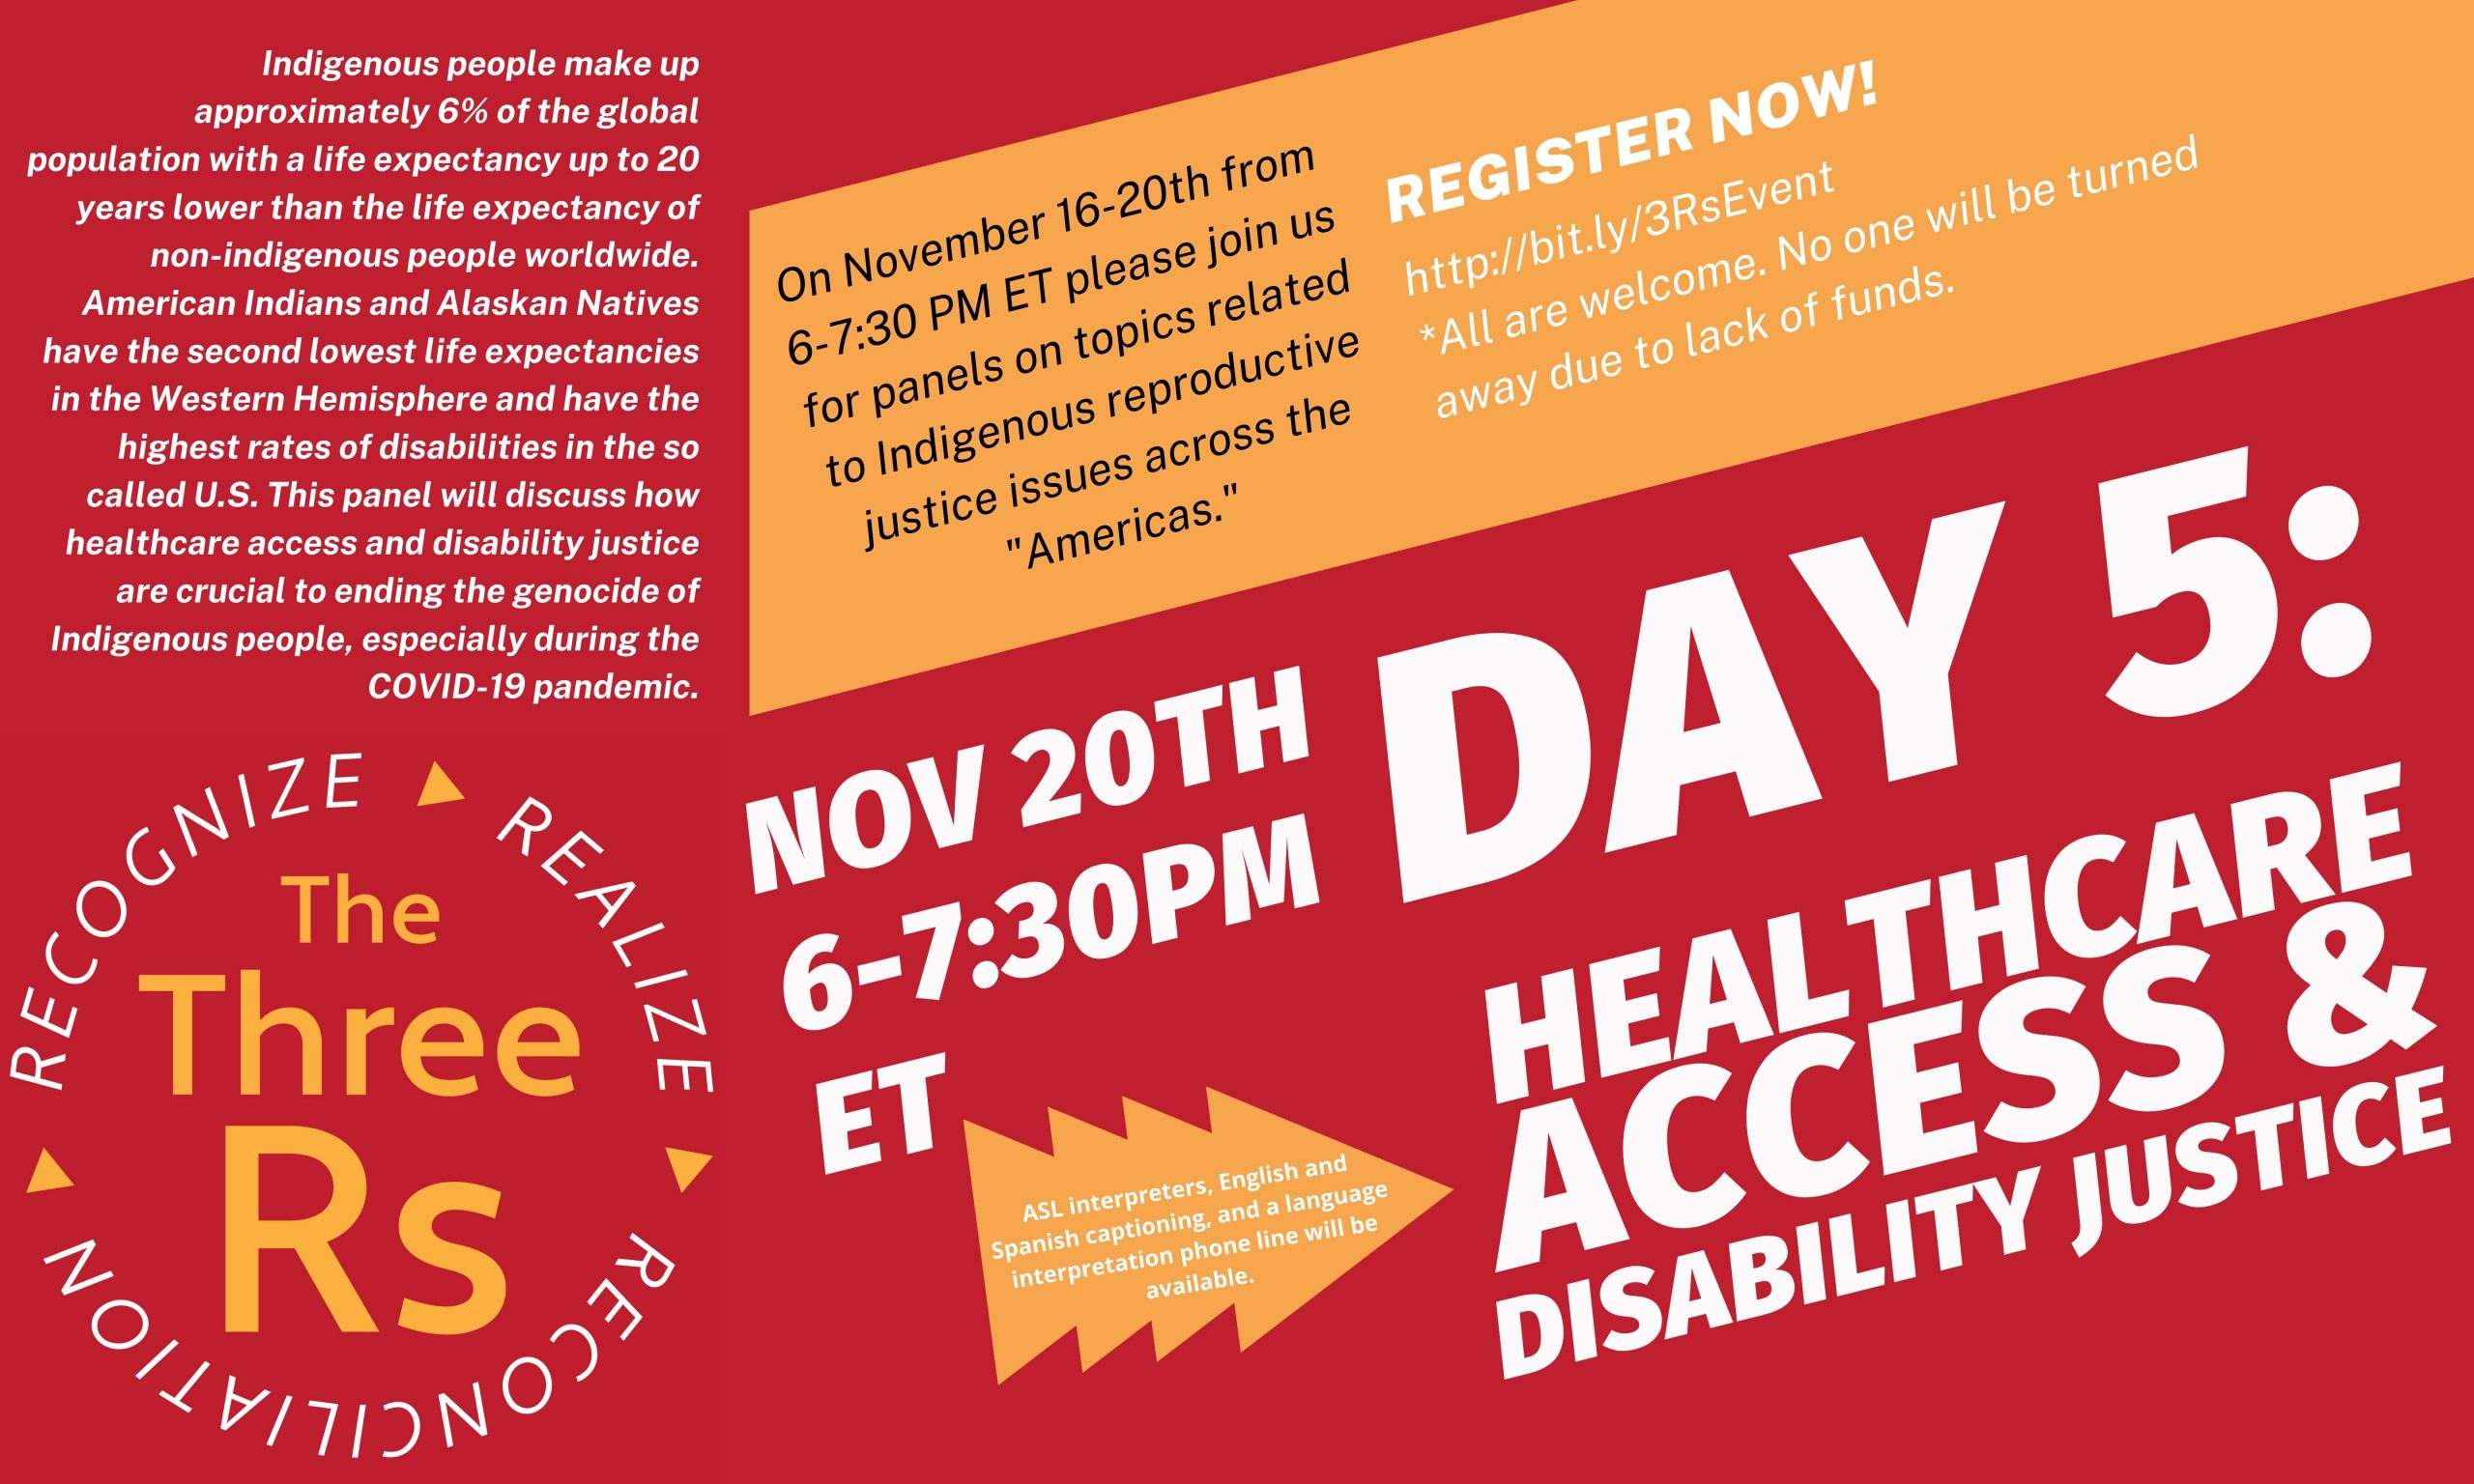 Healthcare access & disability justice